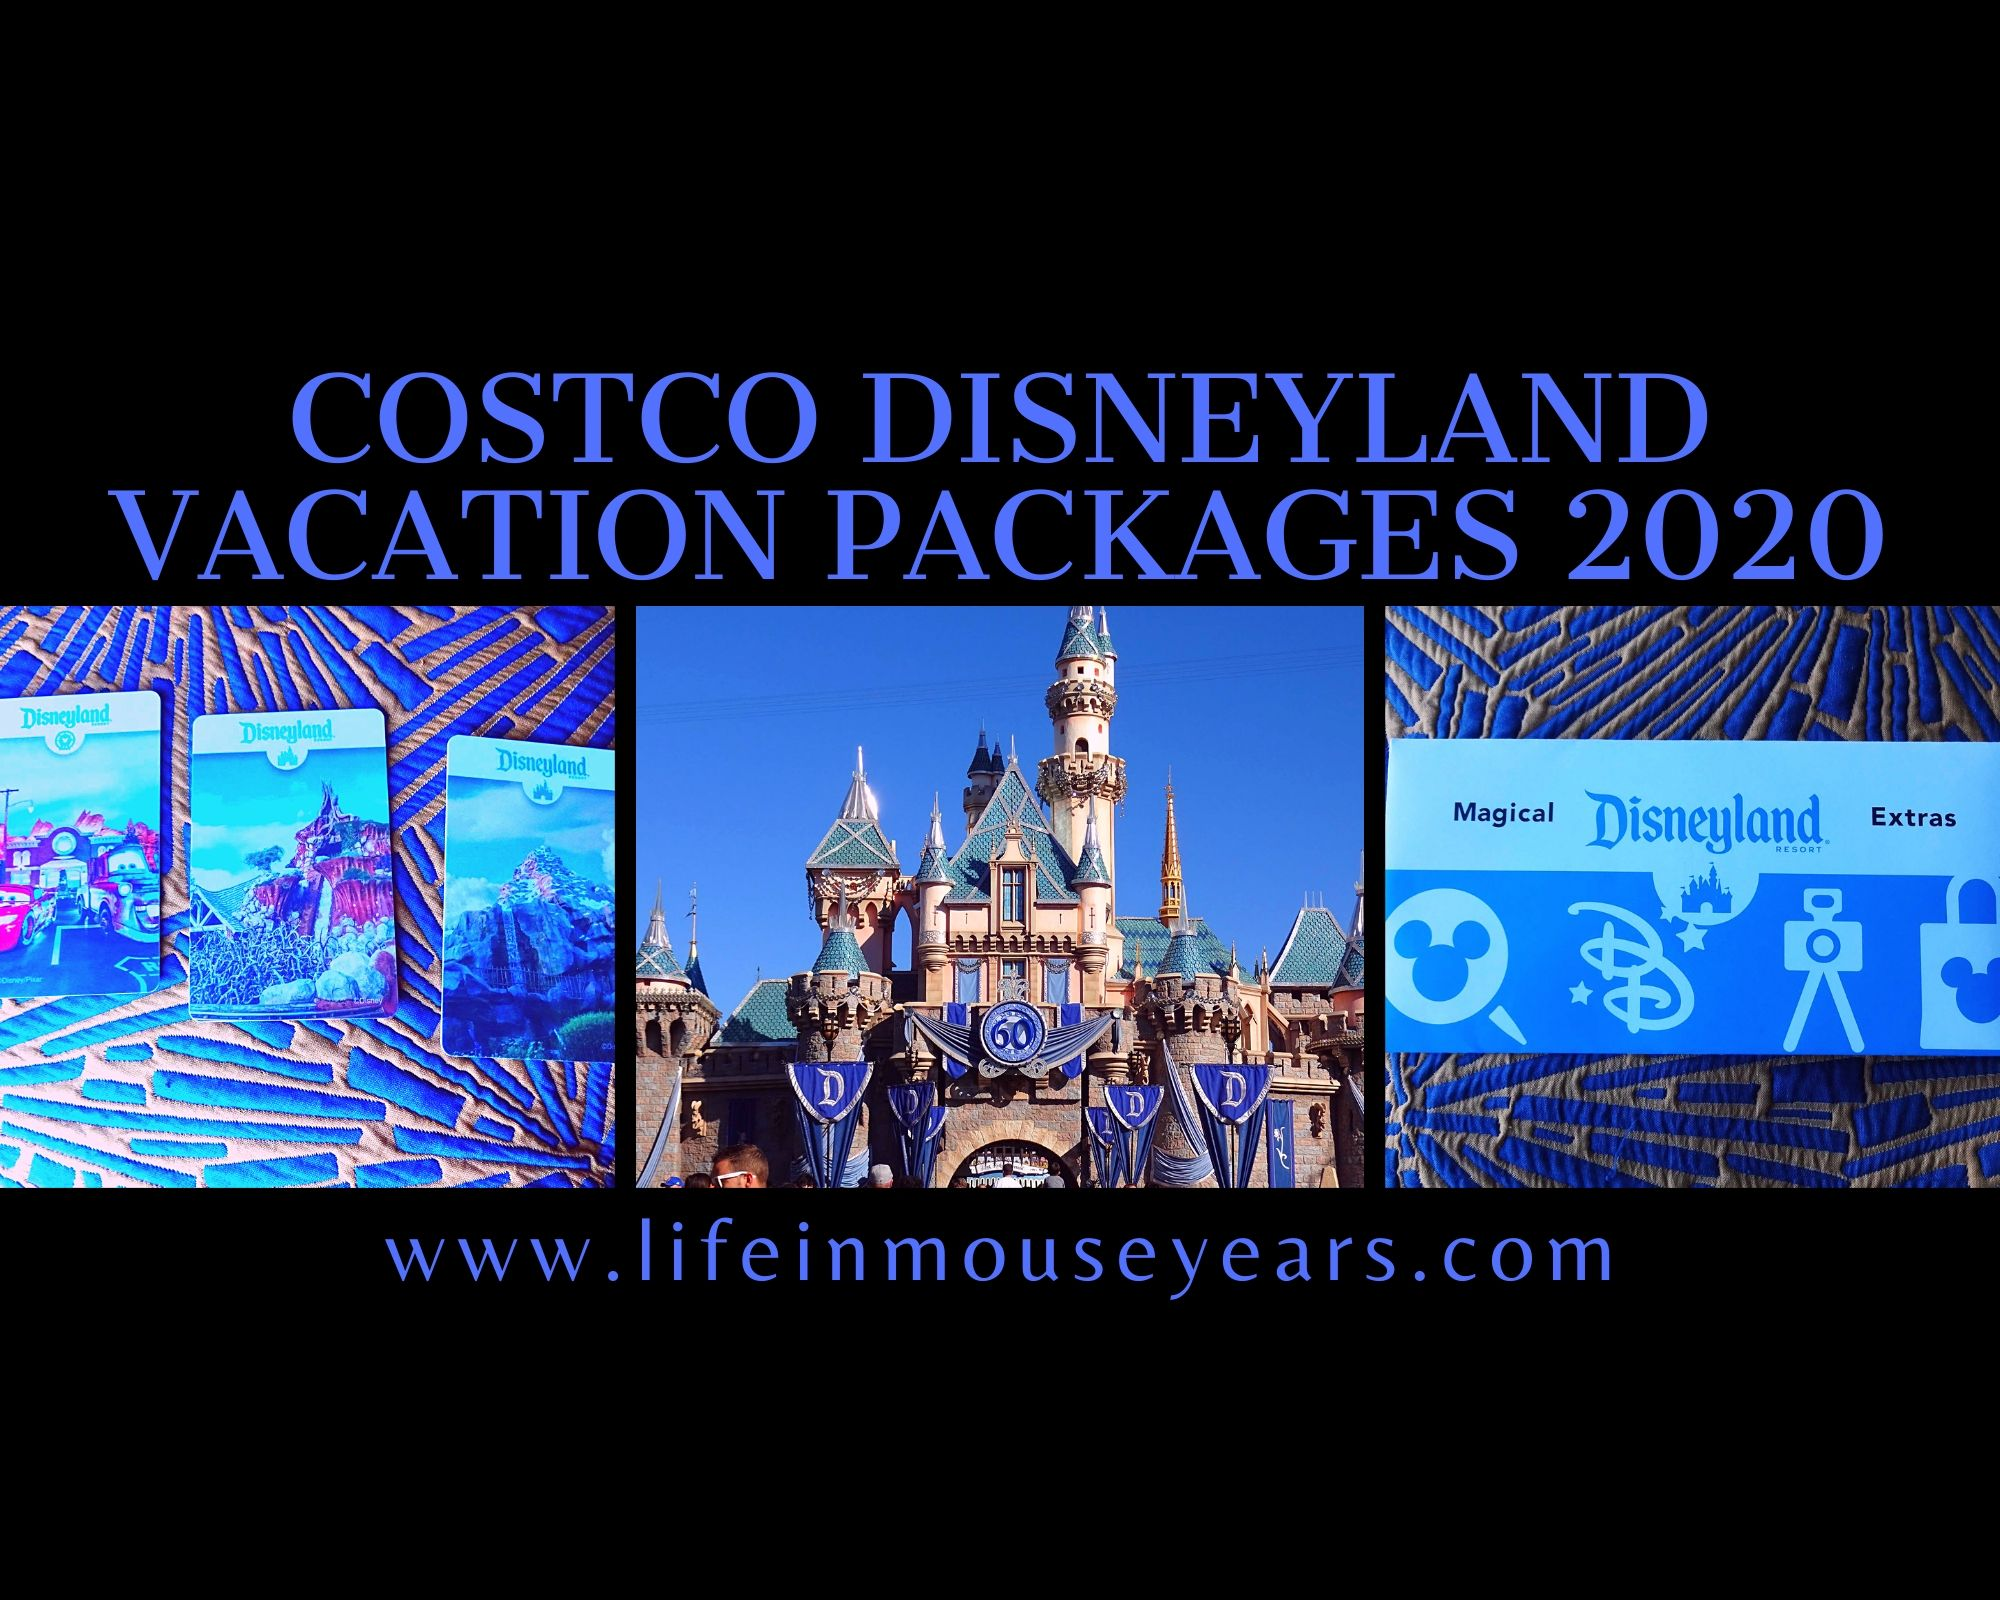 Costco Disneyland Vacation Packages 2020  Life in Mouse Years